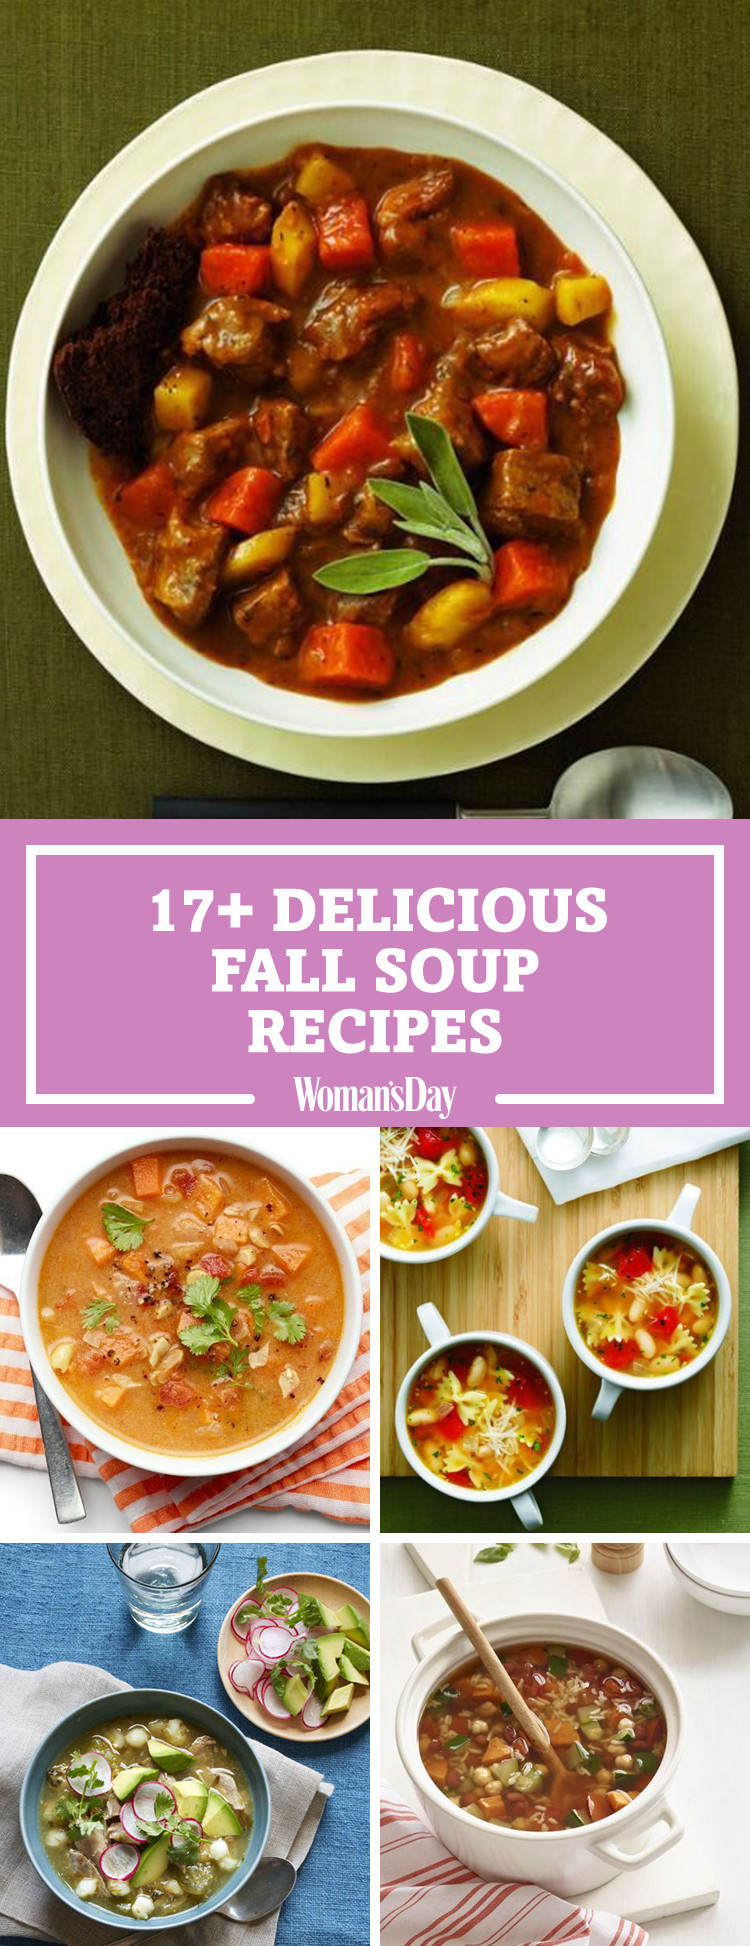 Fall Soup And Stew Recipes  22 Best Fall Soup Recipes Easy and Hearty Autumn Soups